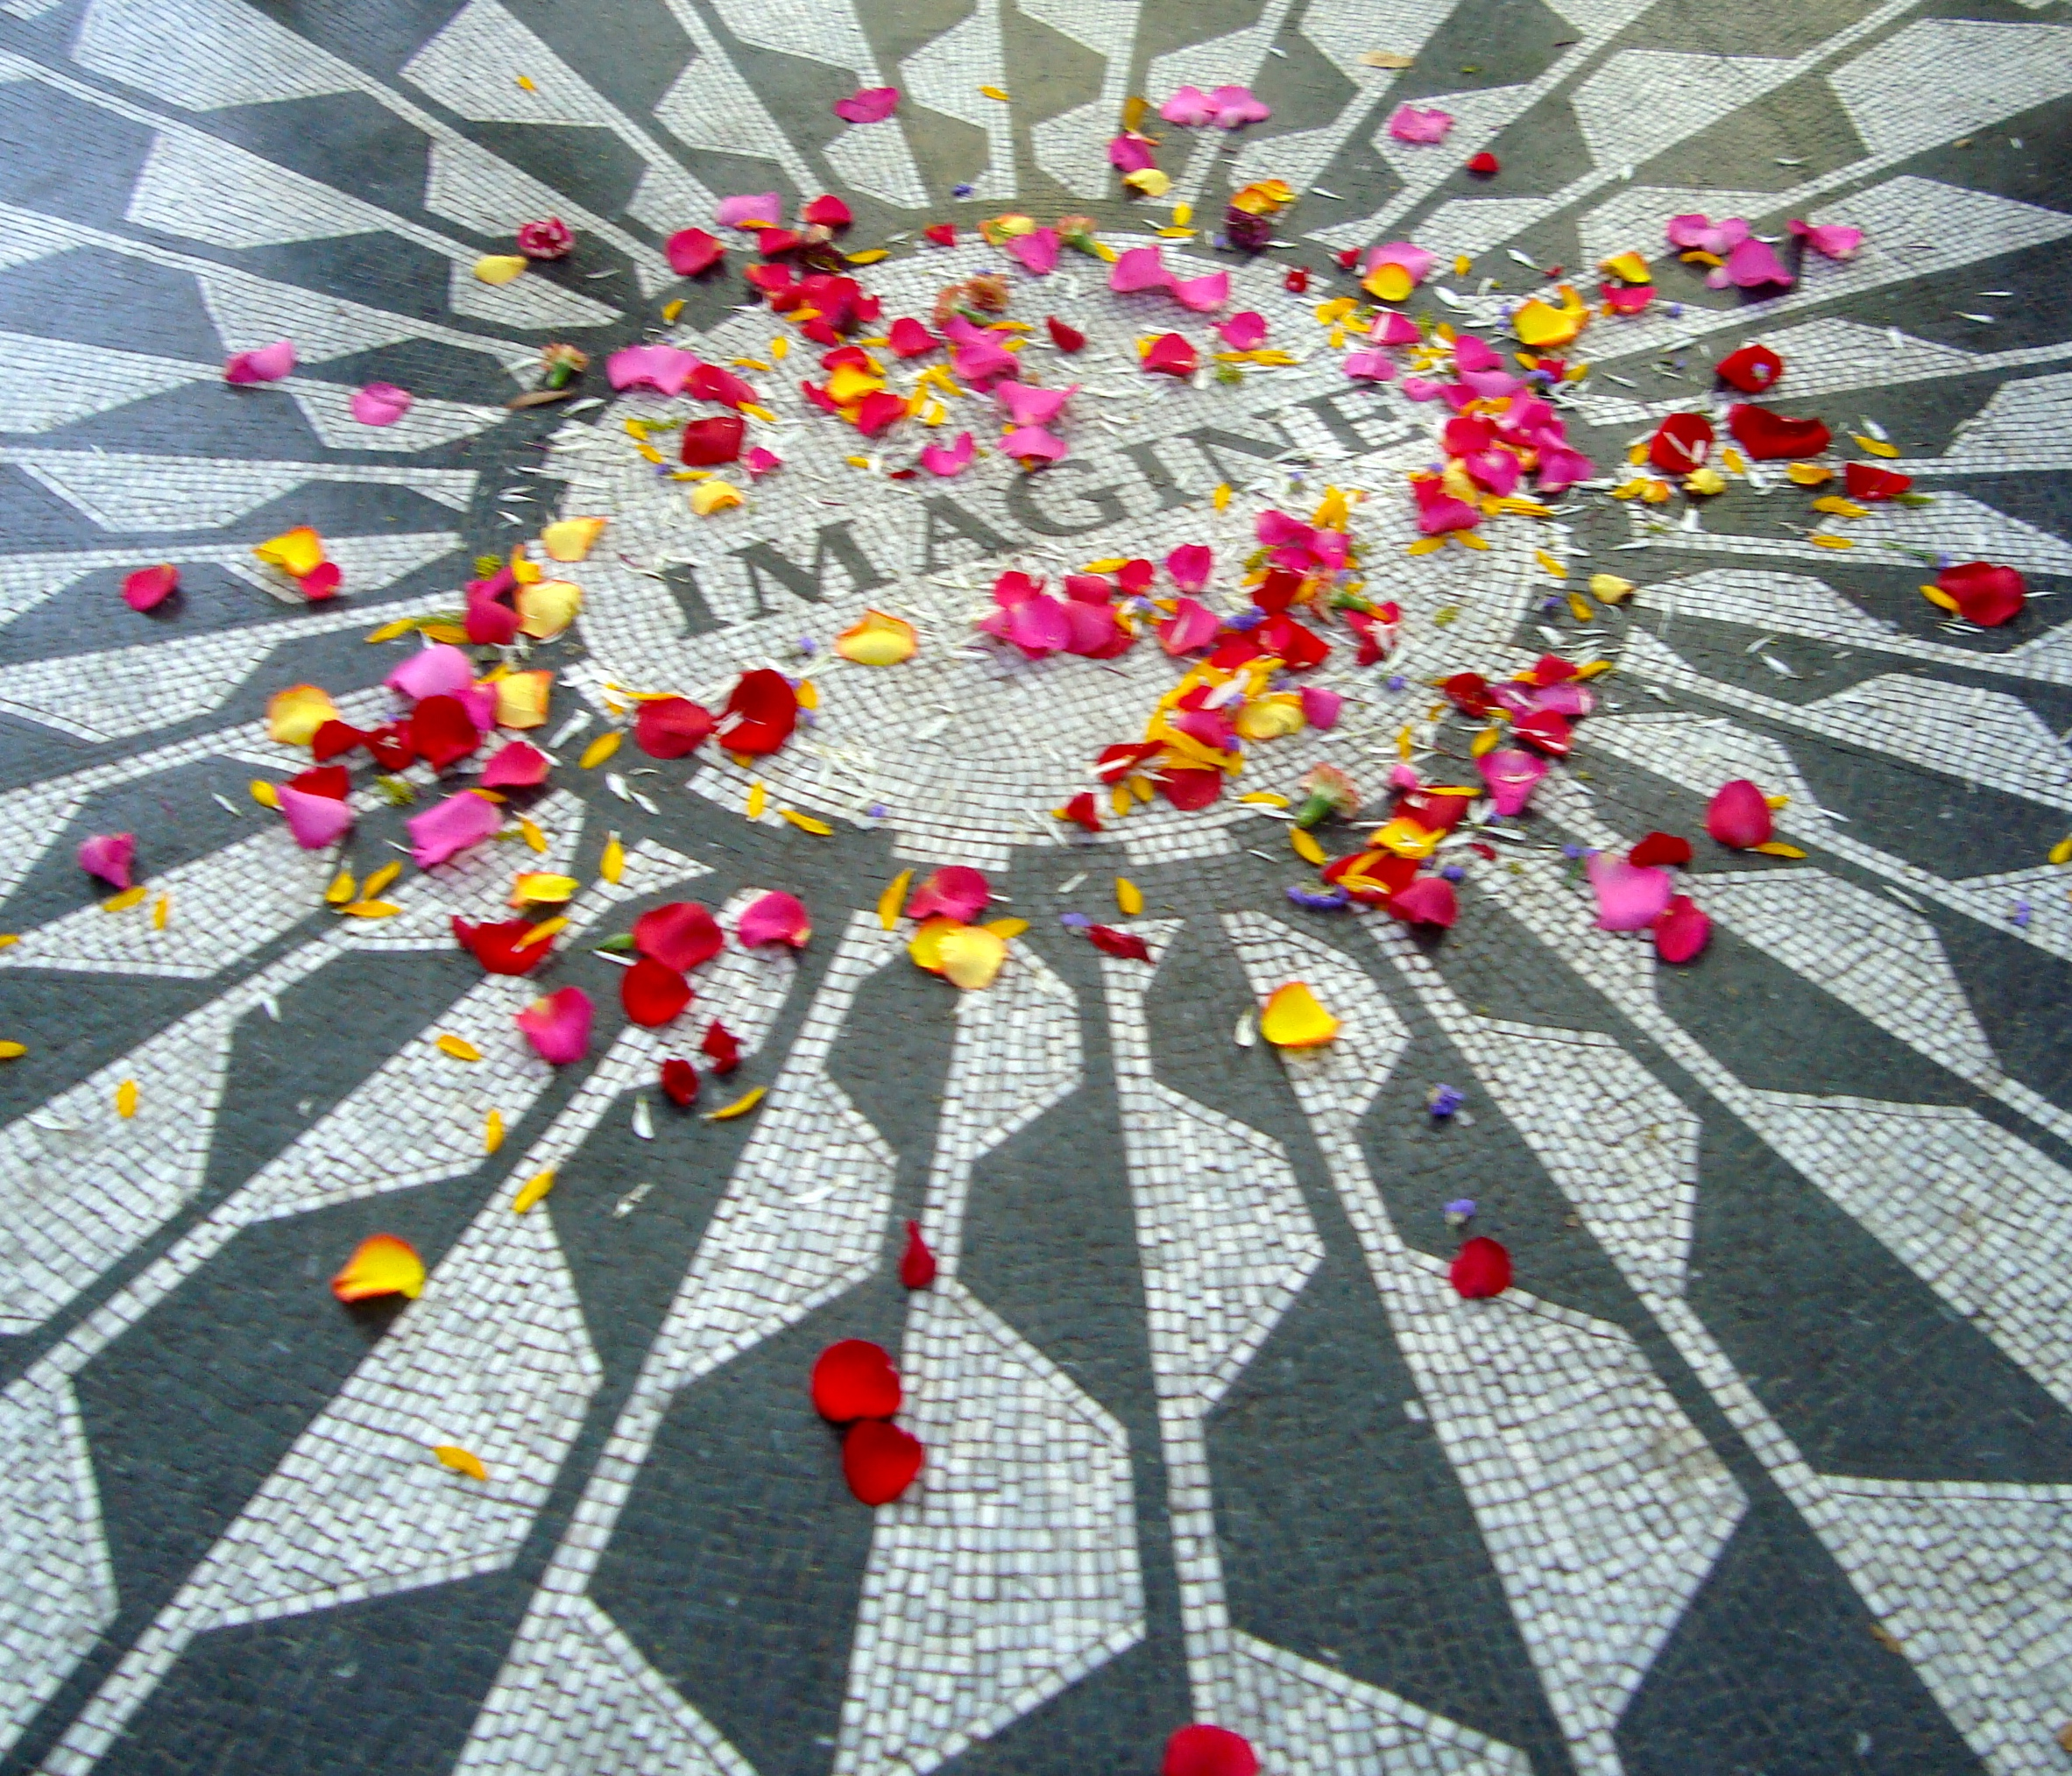 The Imagine tile in honor of John Lennon in Central Park - strewn with flowers.